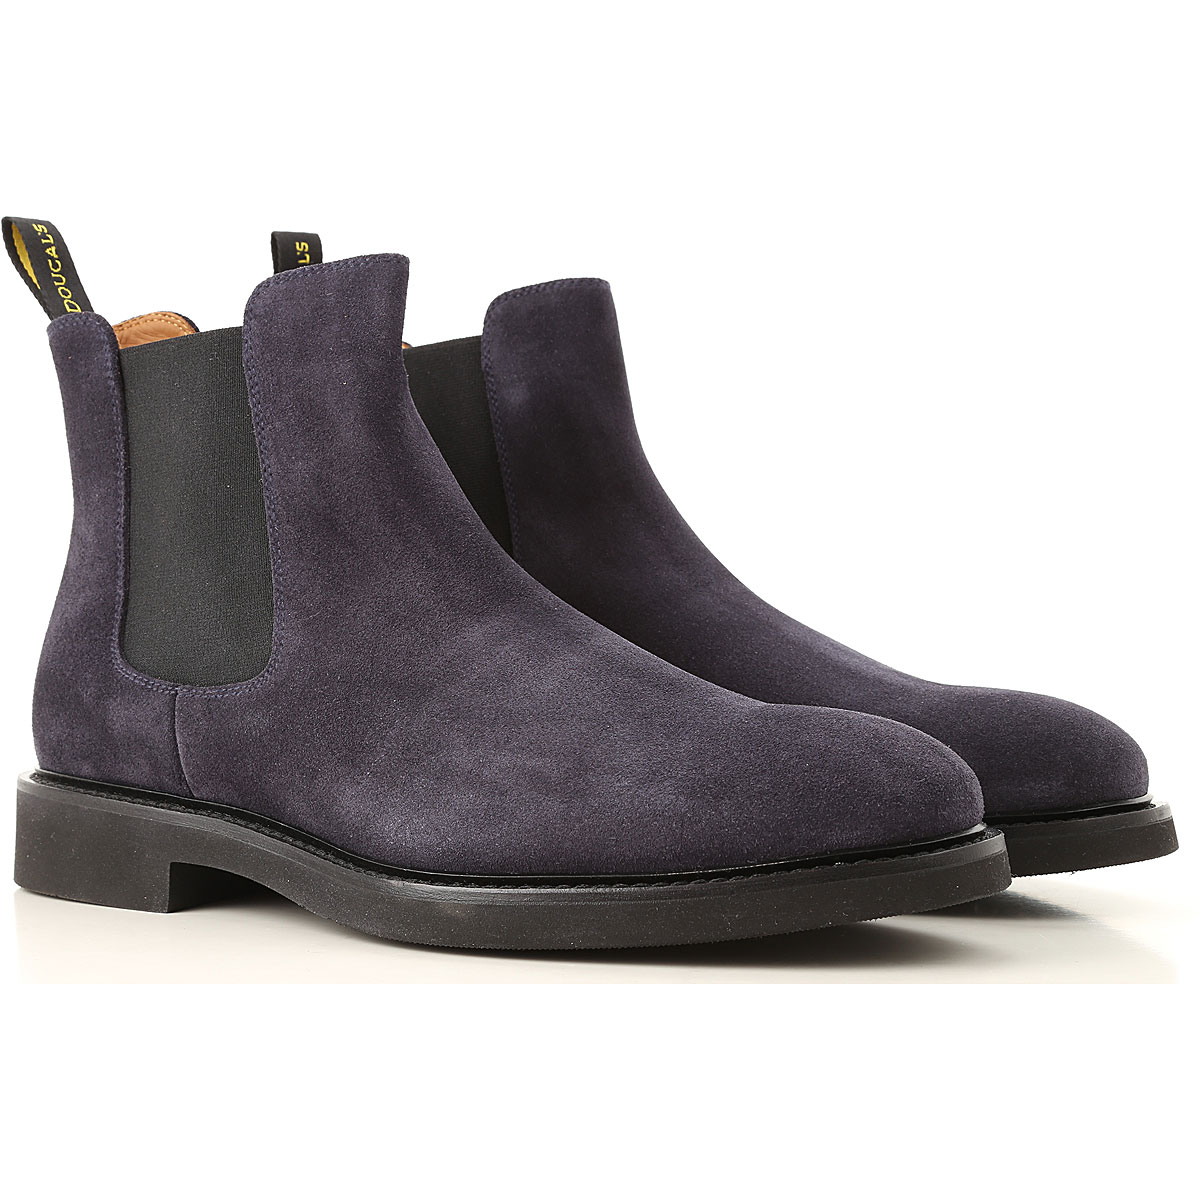 Image of Doucals Chelsea Boots for Men, navy, Suede leather, 2017, 10 10.5 7.5 8 9